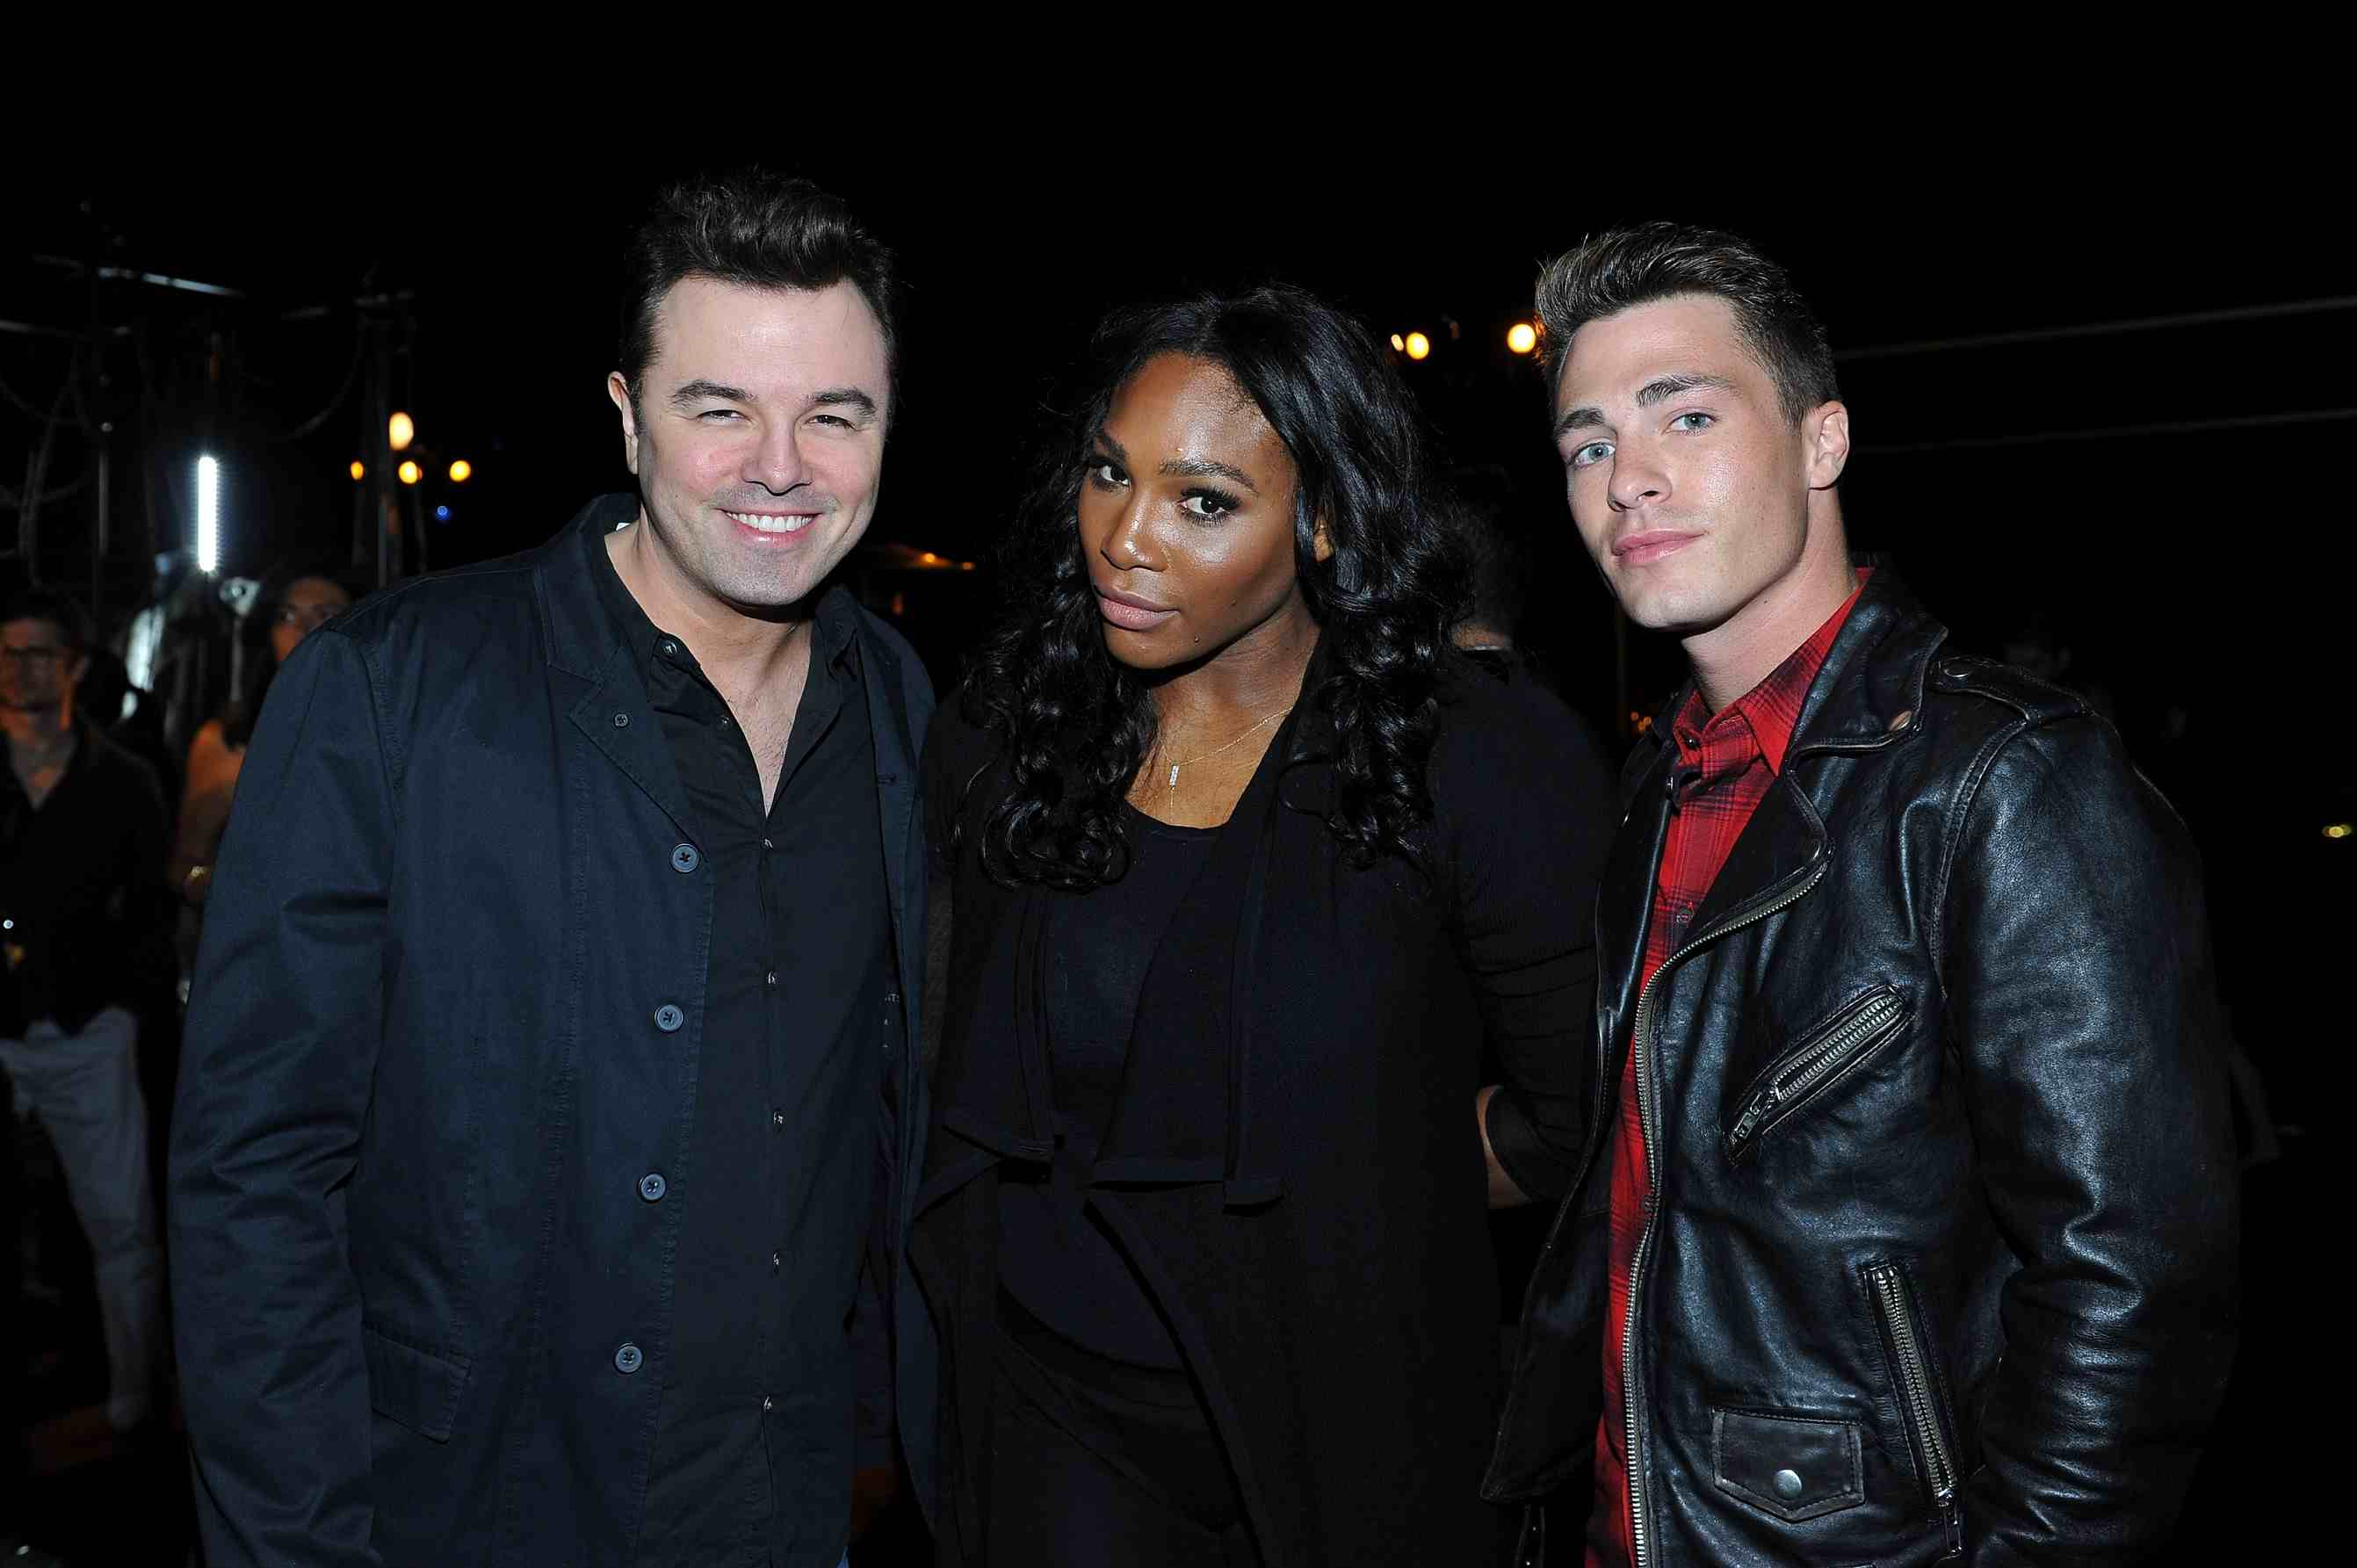 "BEVERLY HILLS, CA - NOVEMBER 18: (L-R) Entertainer Seth MacFarlane, athlete Serena Williams and actor Colton Haynes attend Louis XIII Celebration of ""100 Years"" The Movie You Will Never See, starring John Malkovich at a private residence on November 18, 2015 in Beverly Hills, California. (Photo by Donato Sardella/Getty Images for Louis XIII)"